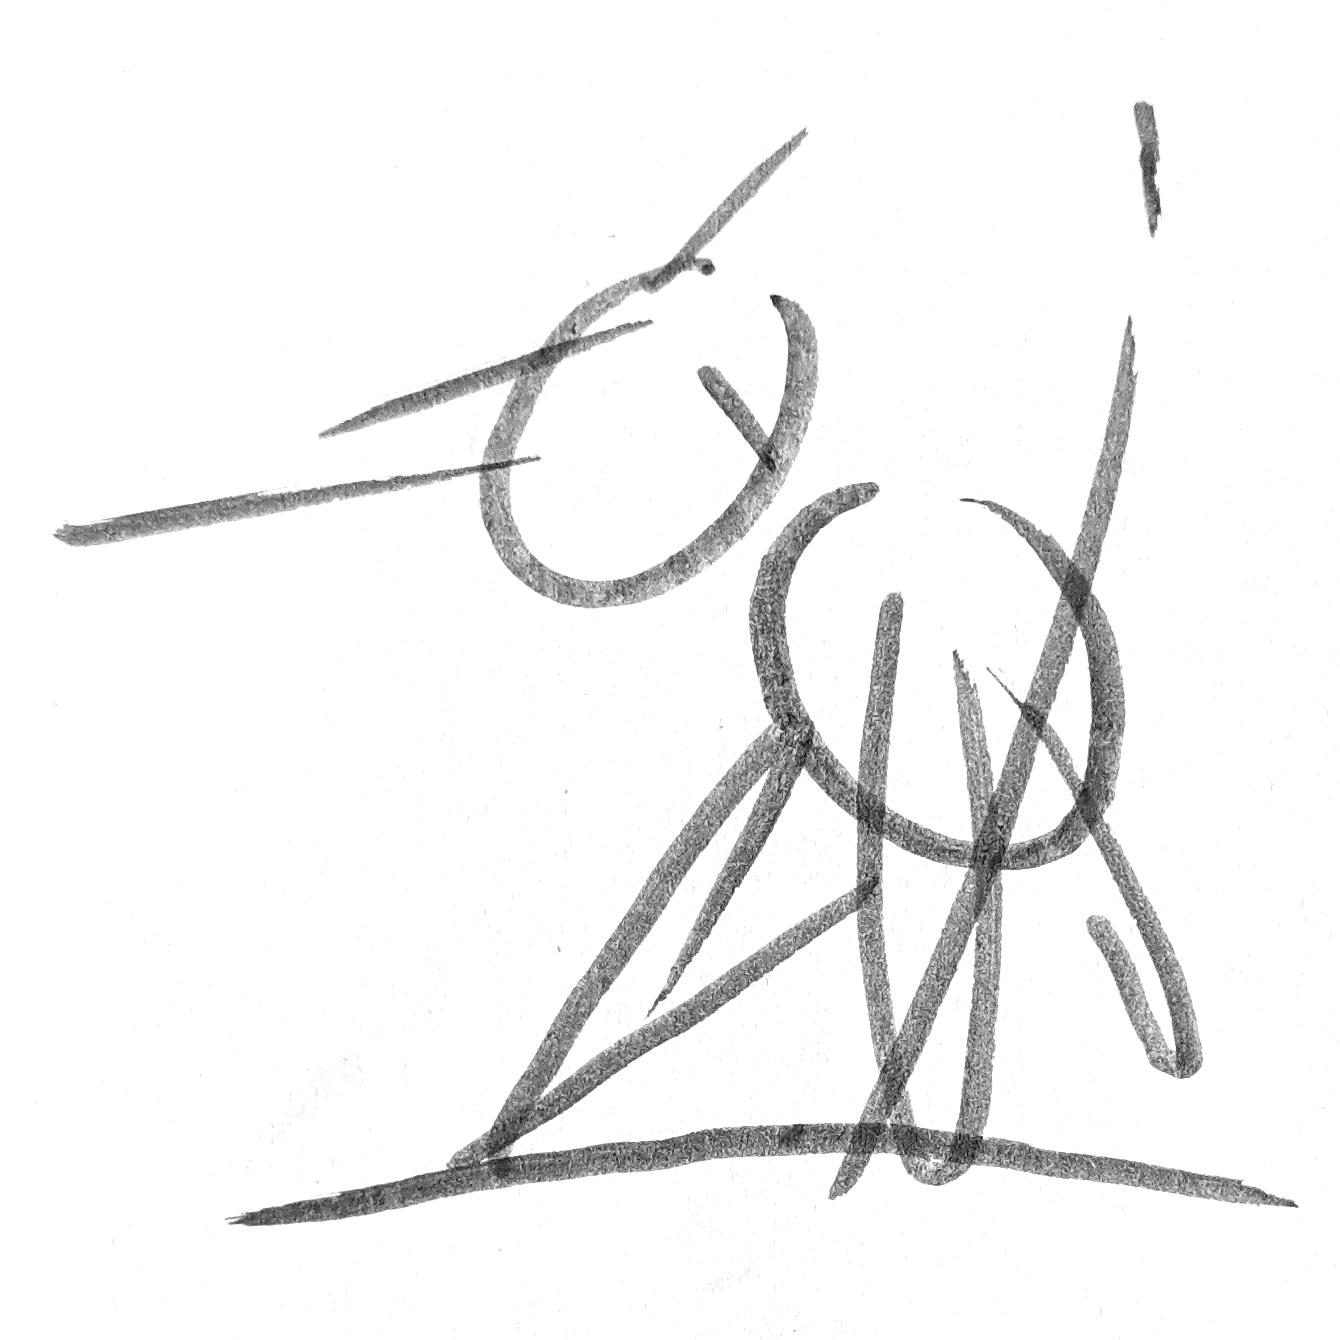 Rough outline of Pteranodon